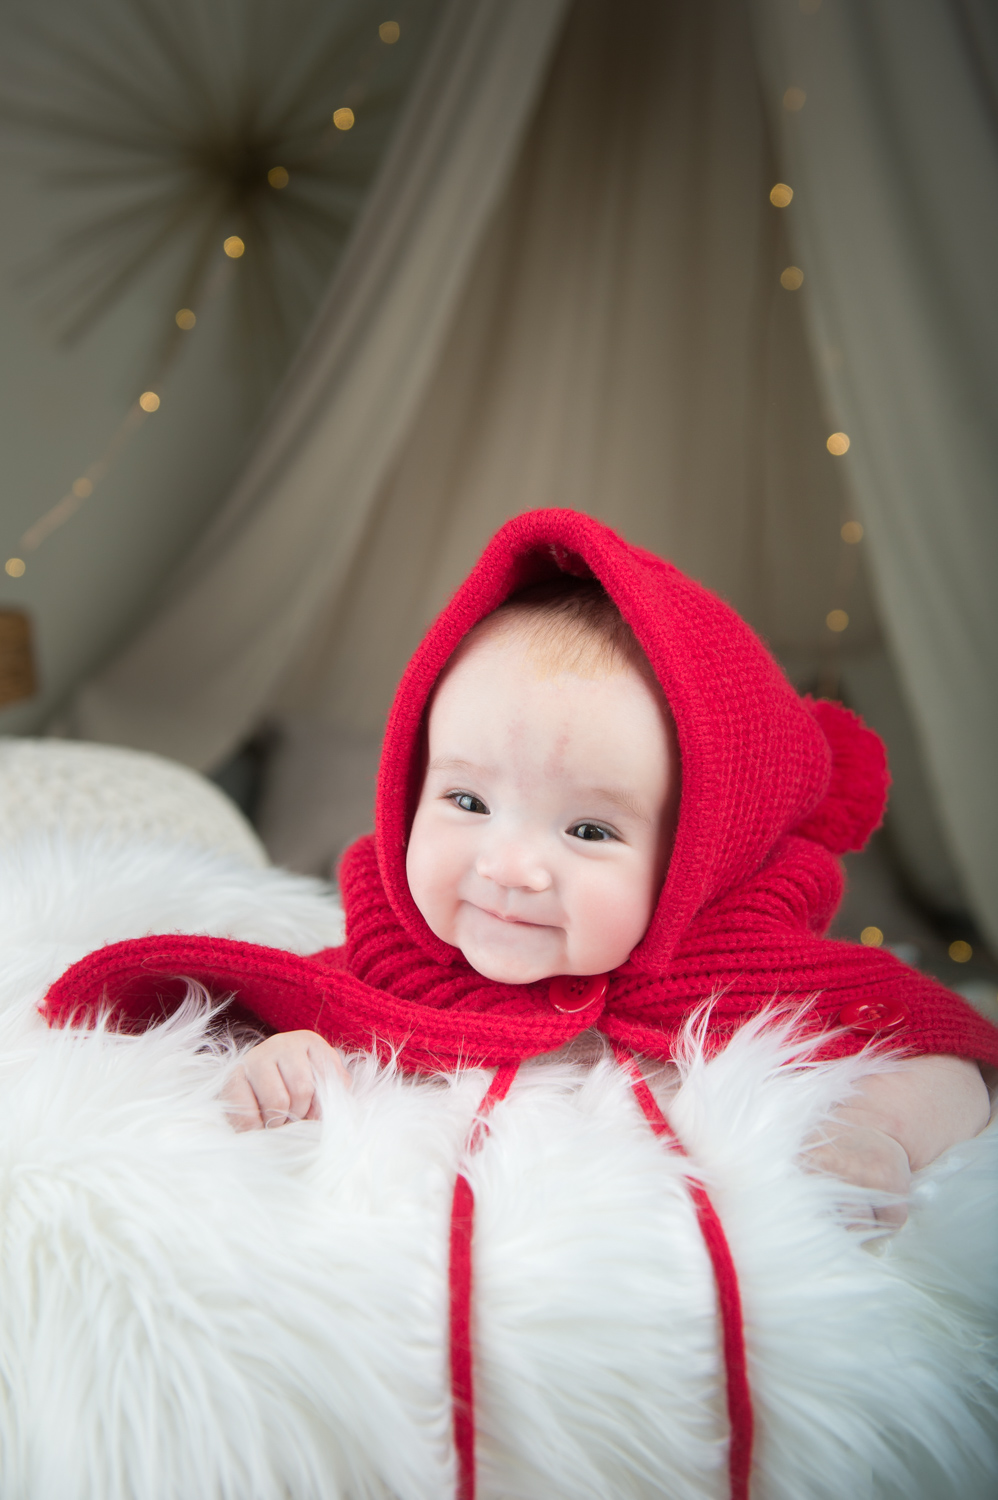 Baby wears red cape on white fur blanket during traditional Korean 100th day photoshoot.